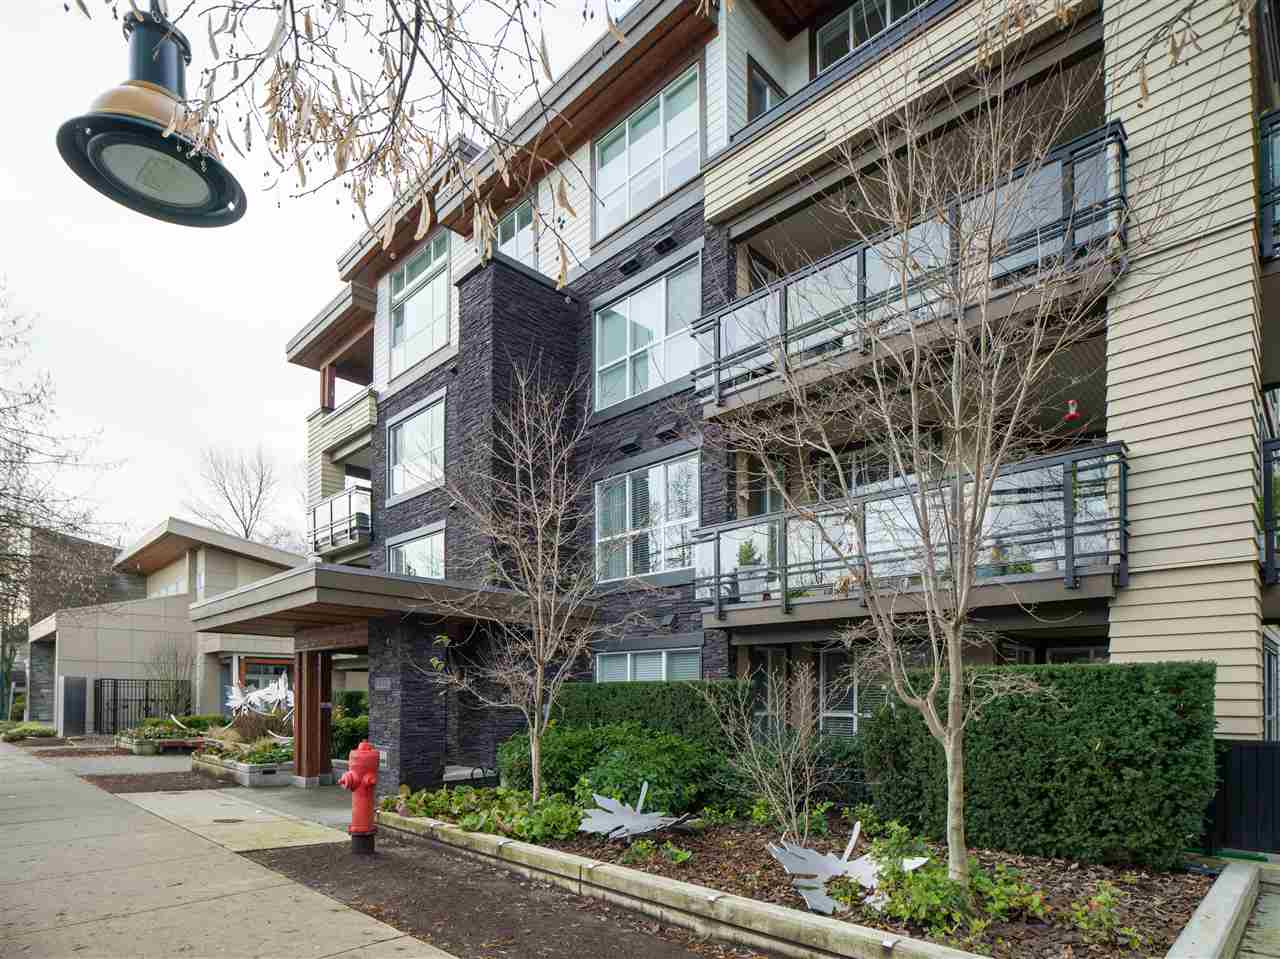 101 3205 MOUNTAIN HIGHWAY - Lynn Valley Apartment/Condo for sale, 2 Bedrooms (R2527517) - #27